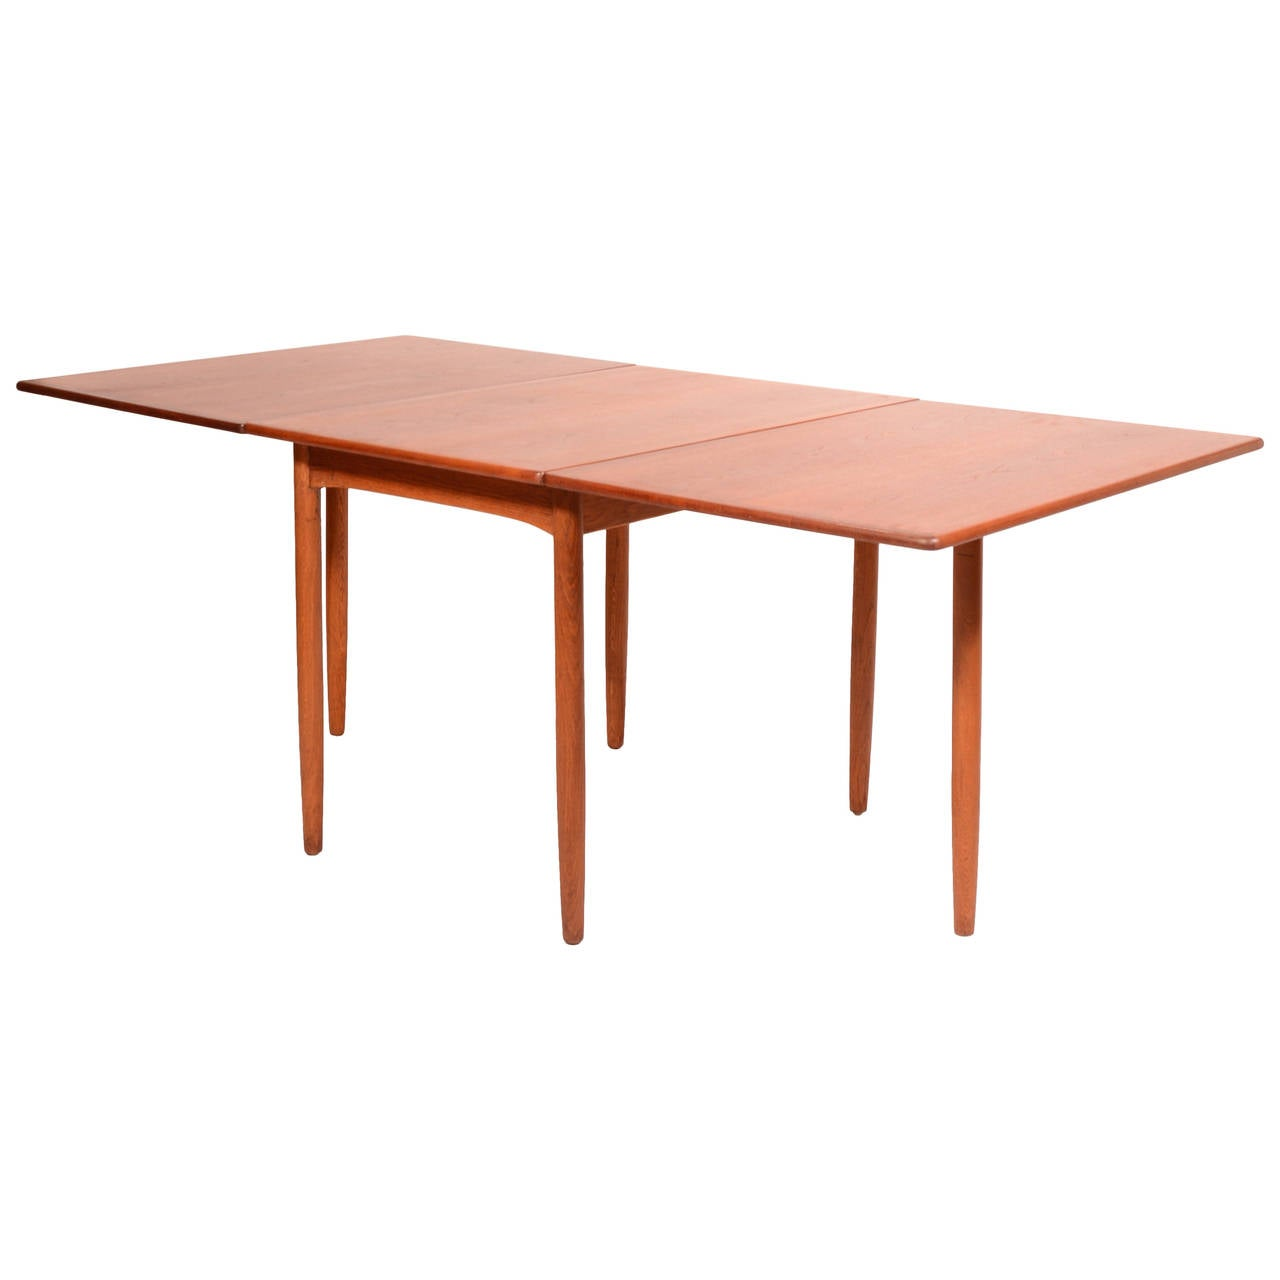 Mid century danish modern drop leaf dining table by hans c for Mid century modern dining table